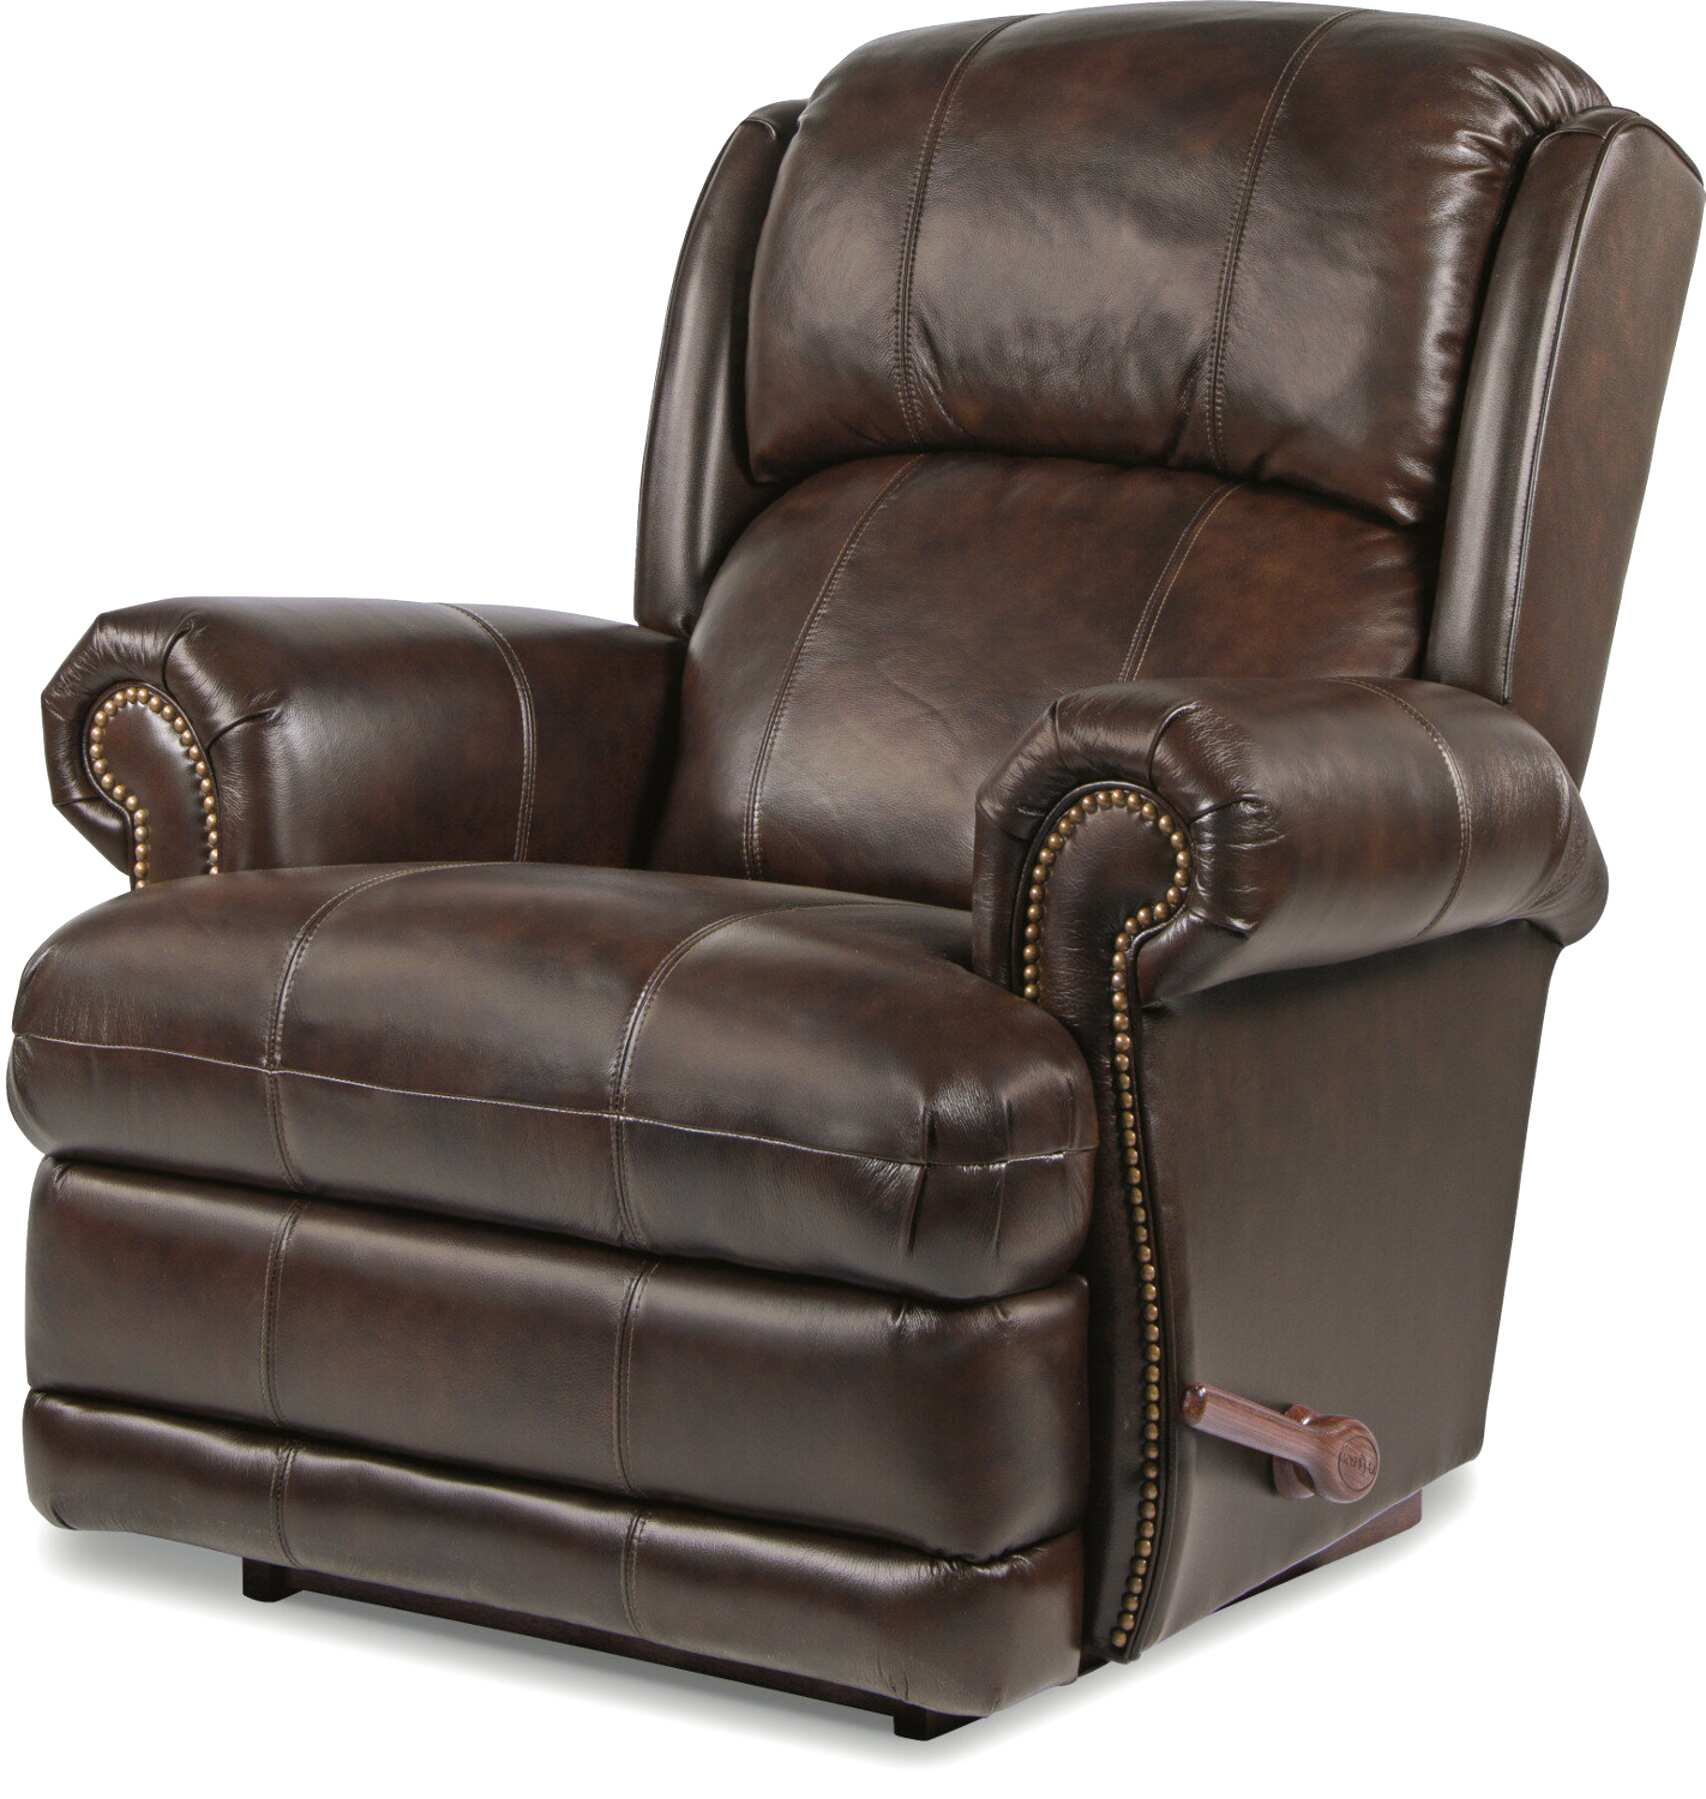 Lazy Boy Leather Recliners For Sale Only 2 Left At 70